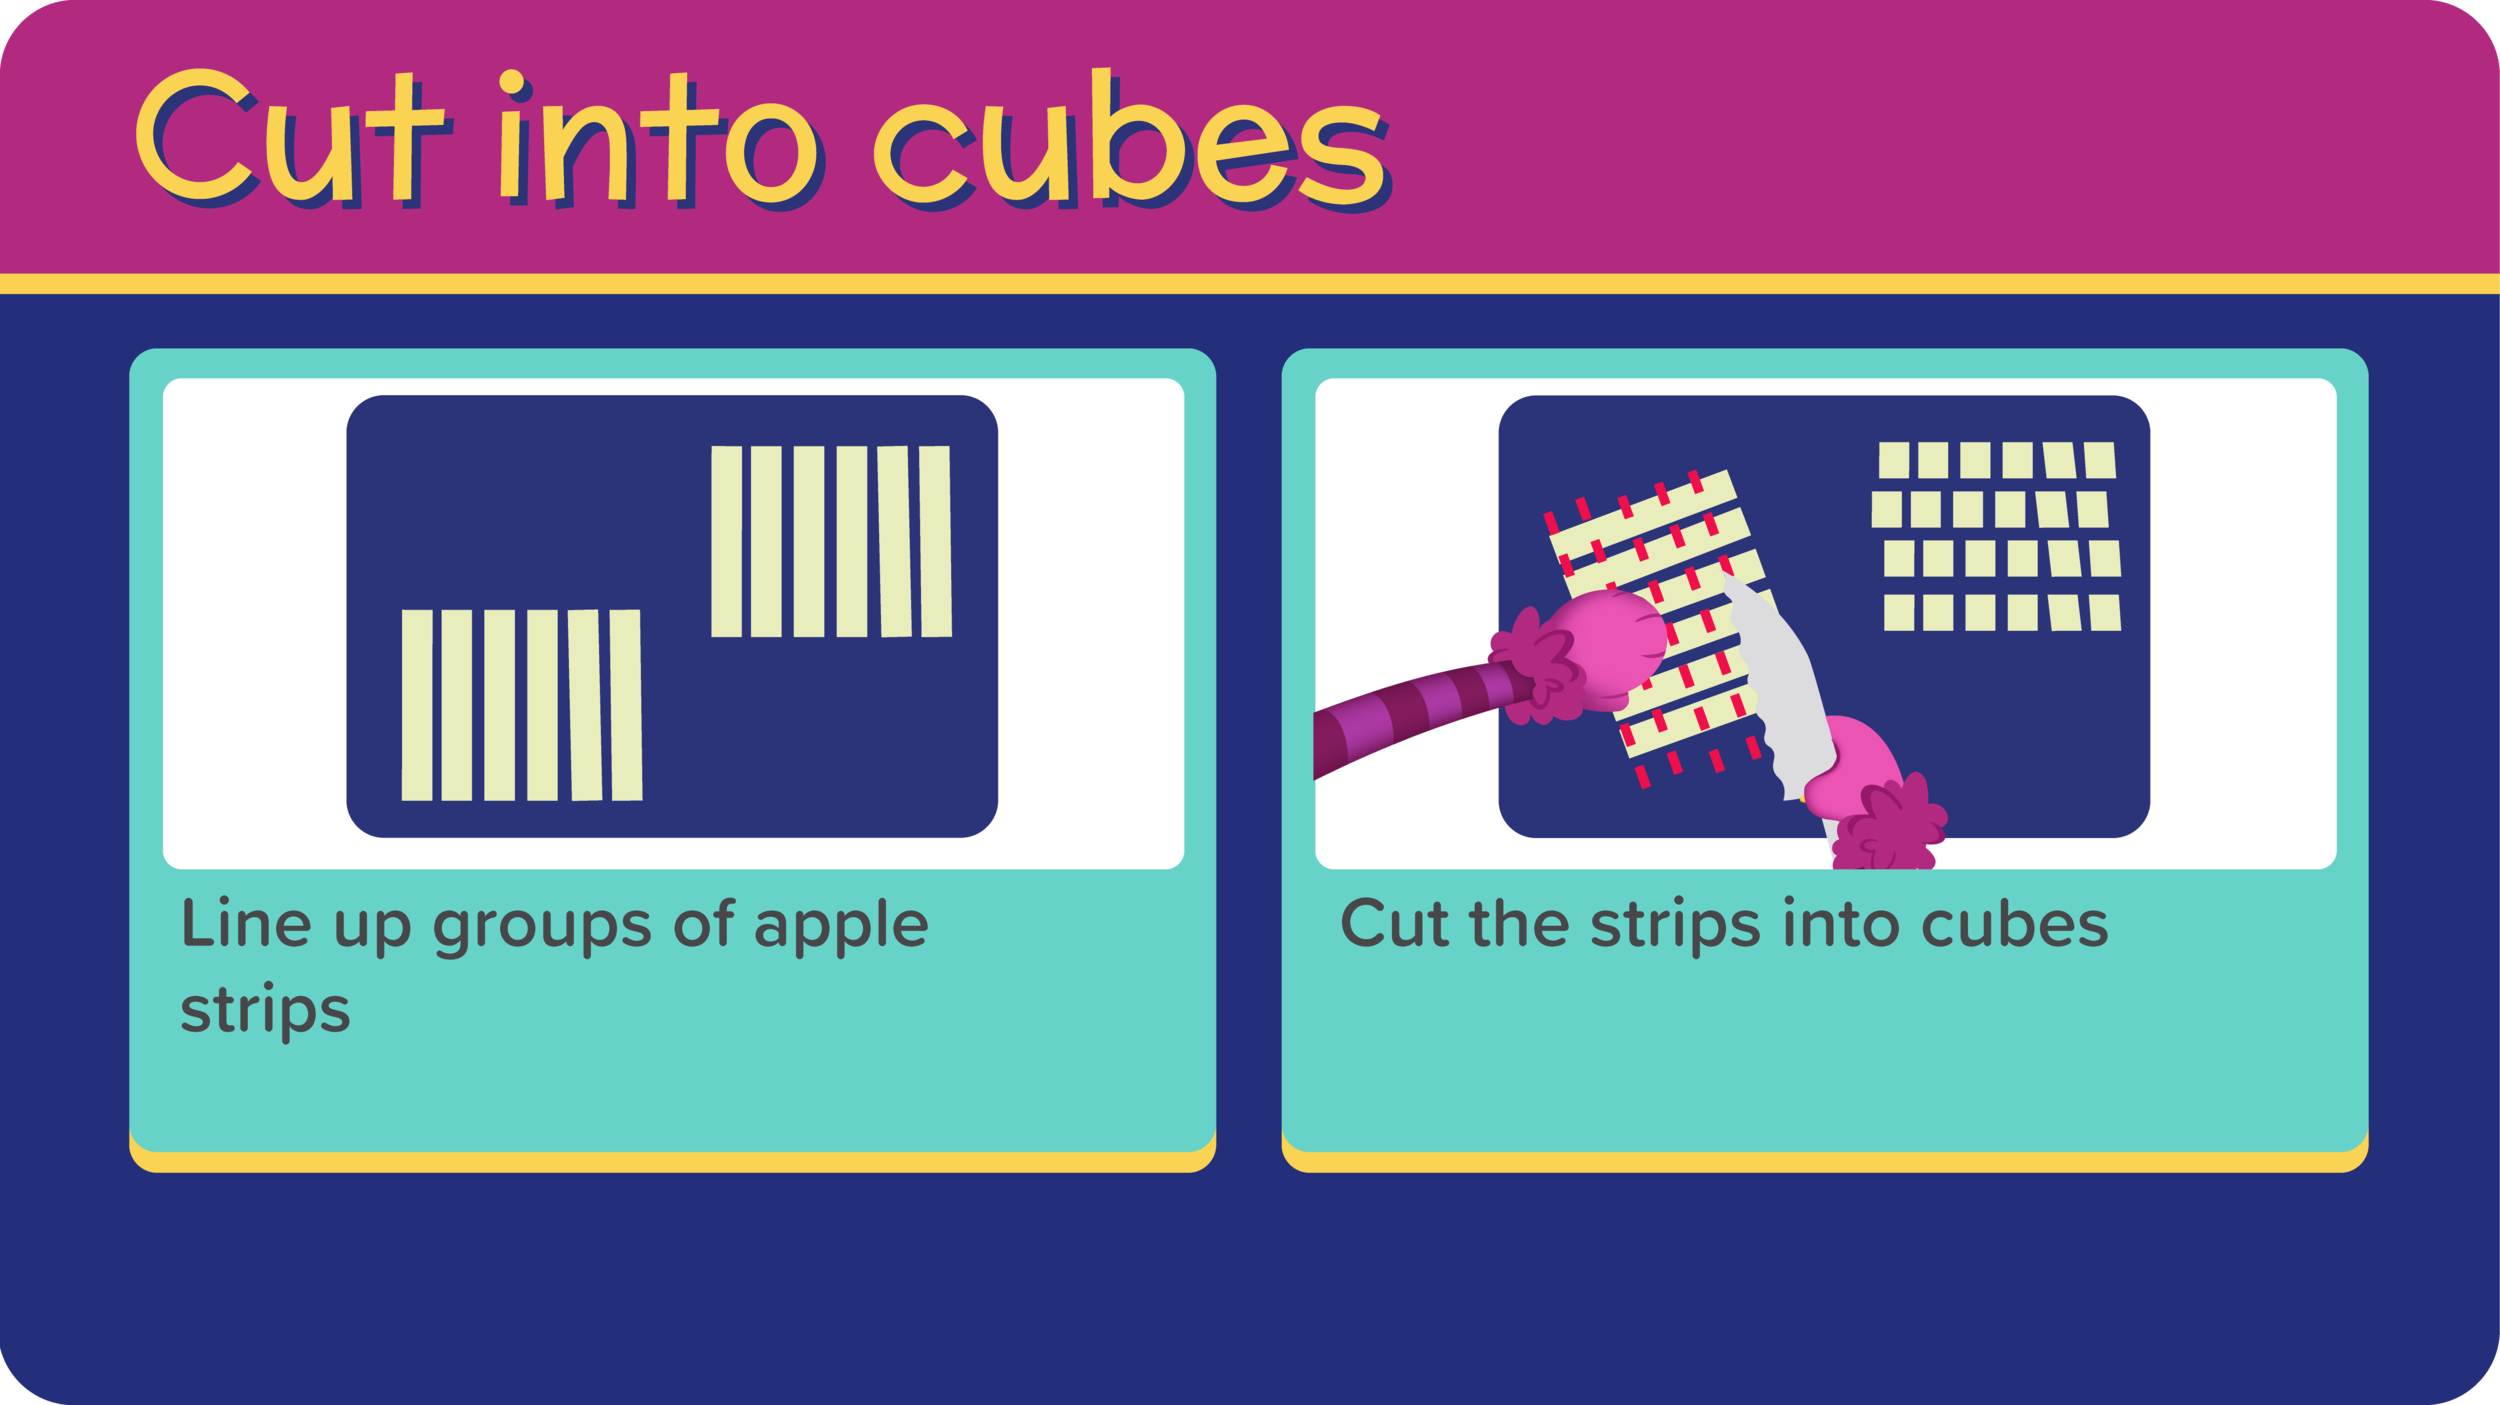 10_AppleSauce_Apples cut cube-01.png